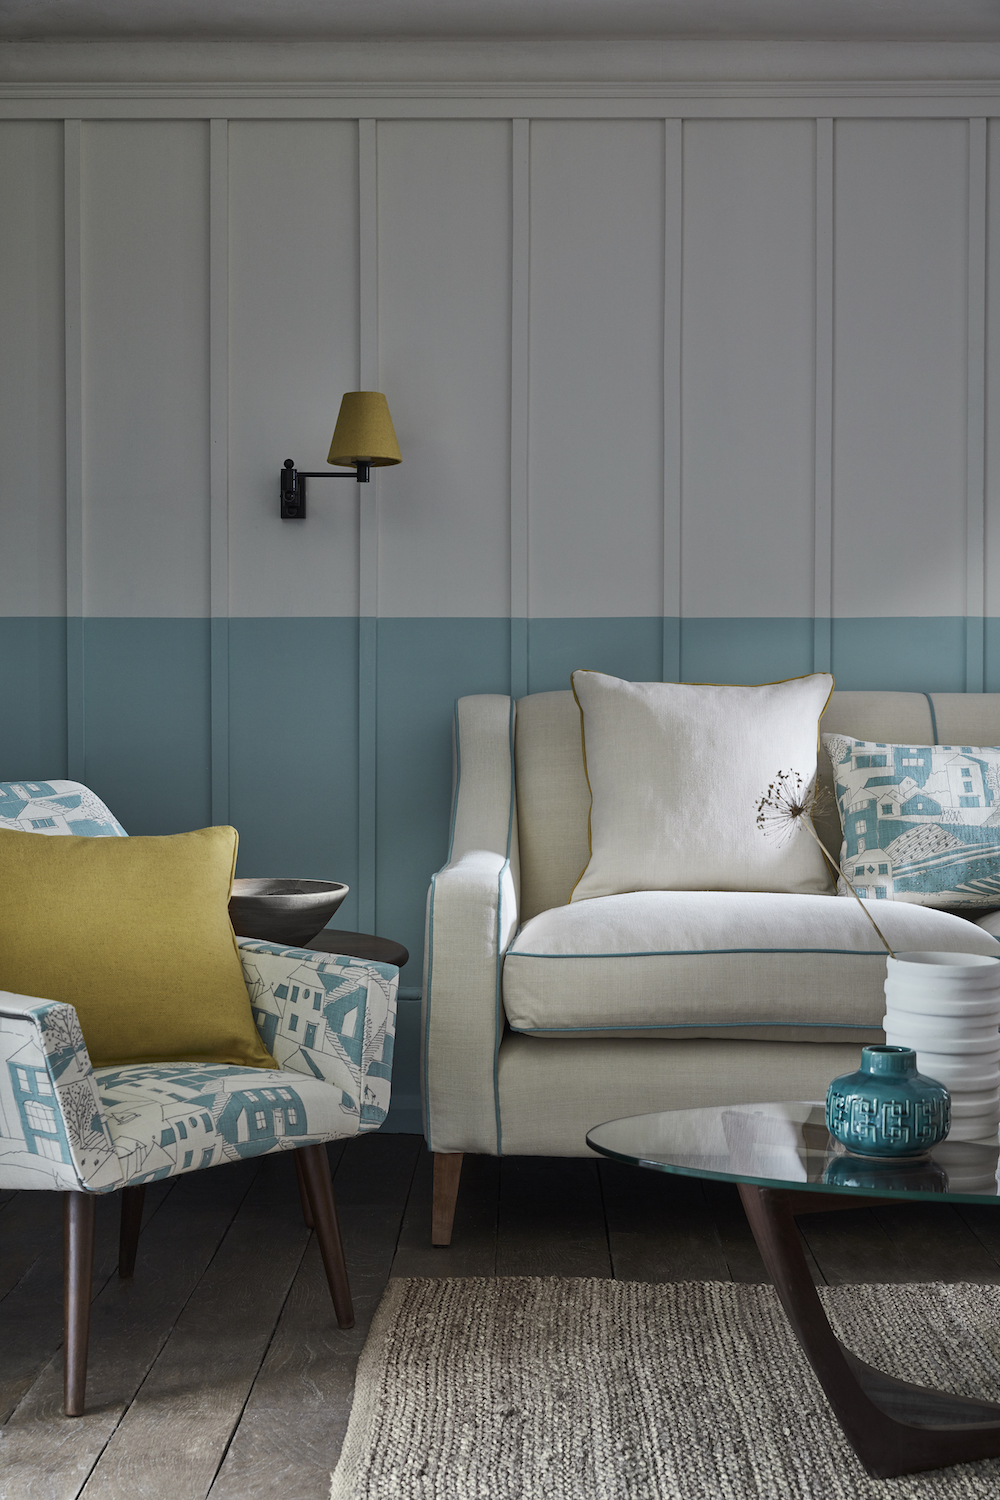 CHAIR: By the Sea Teal, Charcoal SEA-20-38 £52/mtr, CUSHION (on chair): Self piped and zipped Plain Linen Saffron PLAIN-52 £48/mtr, CHEDWORTH SOFA: Plain Linen Cream PLAIN-3 £48/mtr piped in Plain Linen Teal PLAIN-20 £48/mtr, CUSHION (left): Plain Linen Cream PLAIN-3 £48/mtr piped in Plain Linen Saffron PLAIN-52 £48/mtr, CUSHION (right): Rectangular self piped and zipped By the Sea Teal, Charcoal SEA-20-38 £52/mtr, LAMPSHADE: Plain Linen Saffron PLAIN-52 £48/mtr, LIGHT FITTING: Hanson Wall light in Matt Black by Jim Lawrence £87.20, RUG: Handmade Looped by Scumble Goosie £49 each, PAINT: Main wall Linen Wash 33 and Brighton 203 by Little Greene Paint Company £42 per 2.5 ltr.